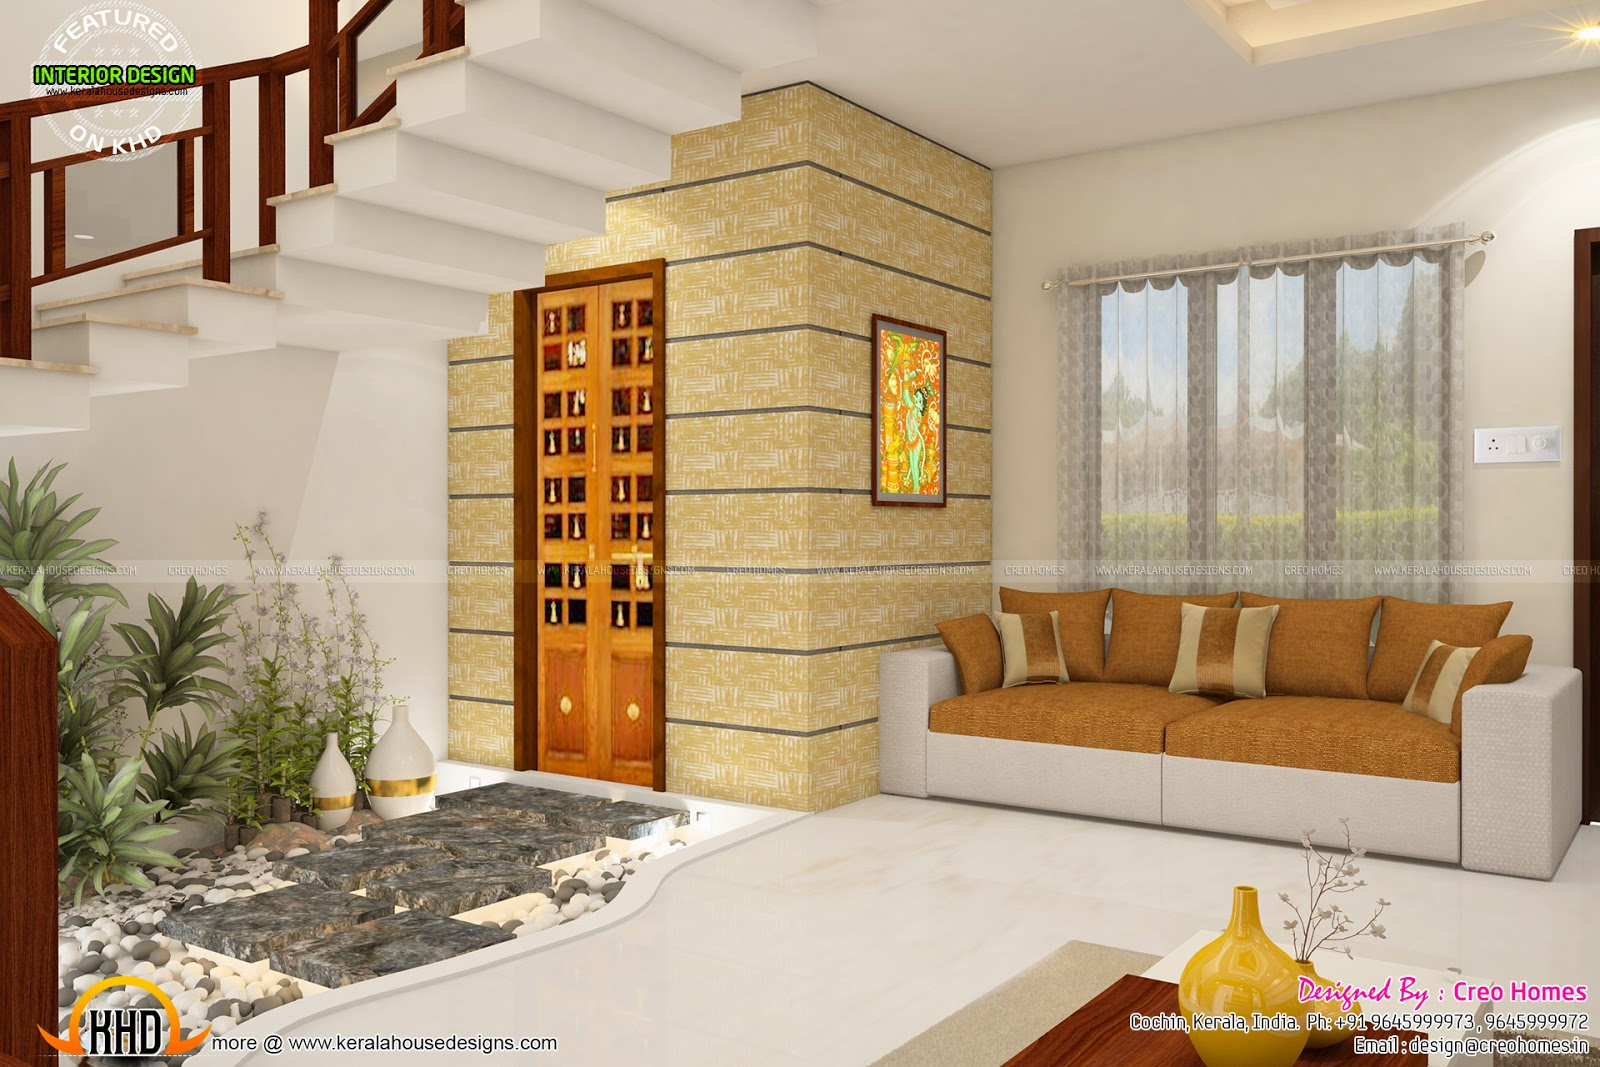 Total home interior solutions by creo homes kerala home design and floor plans - Home designs interior ...